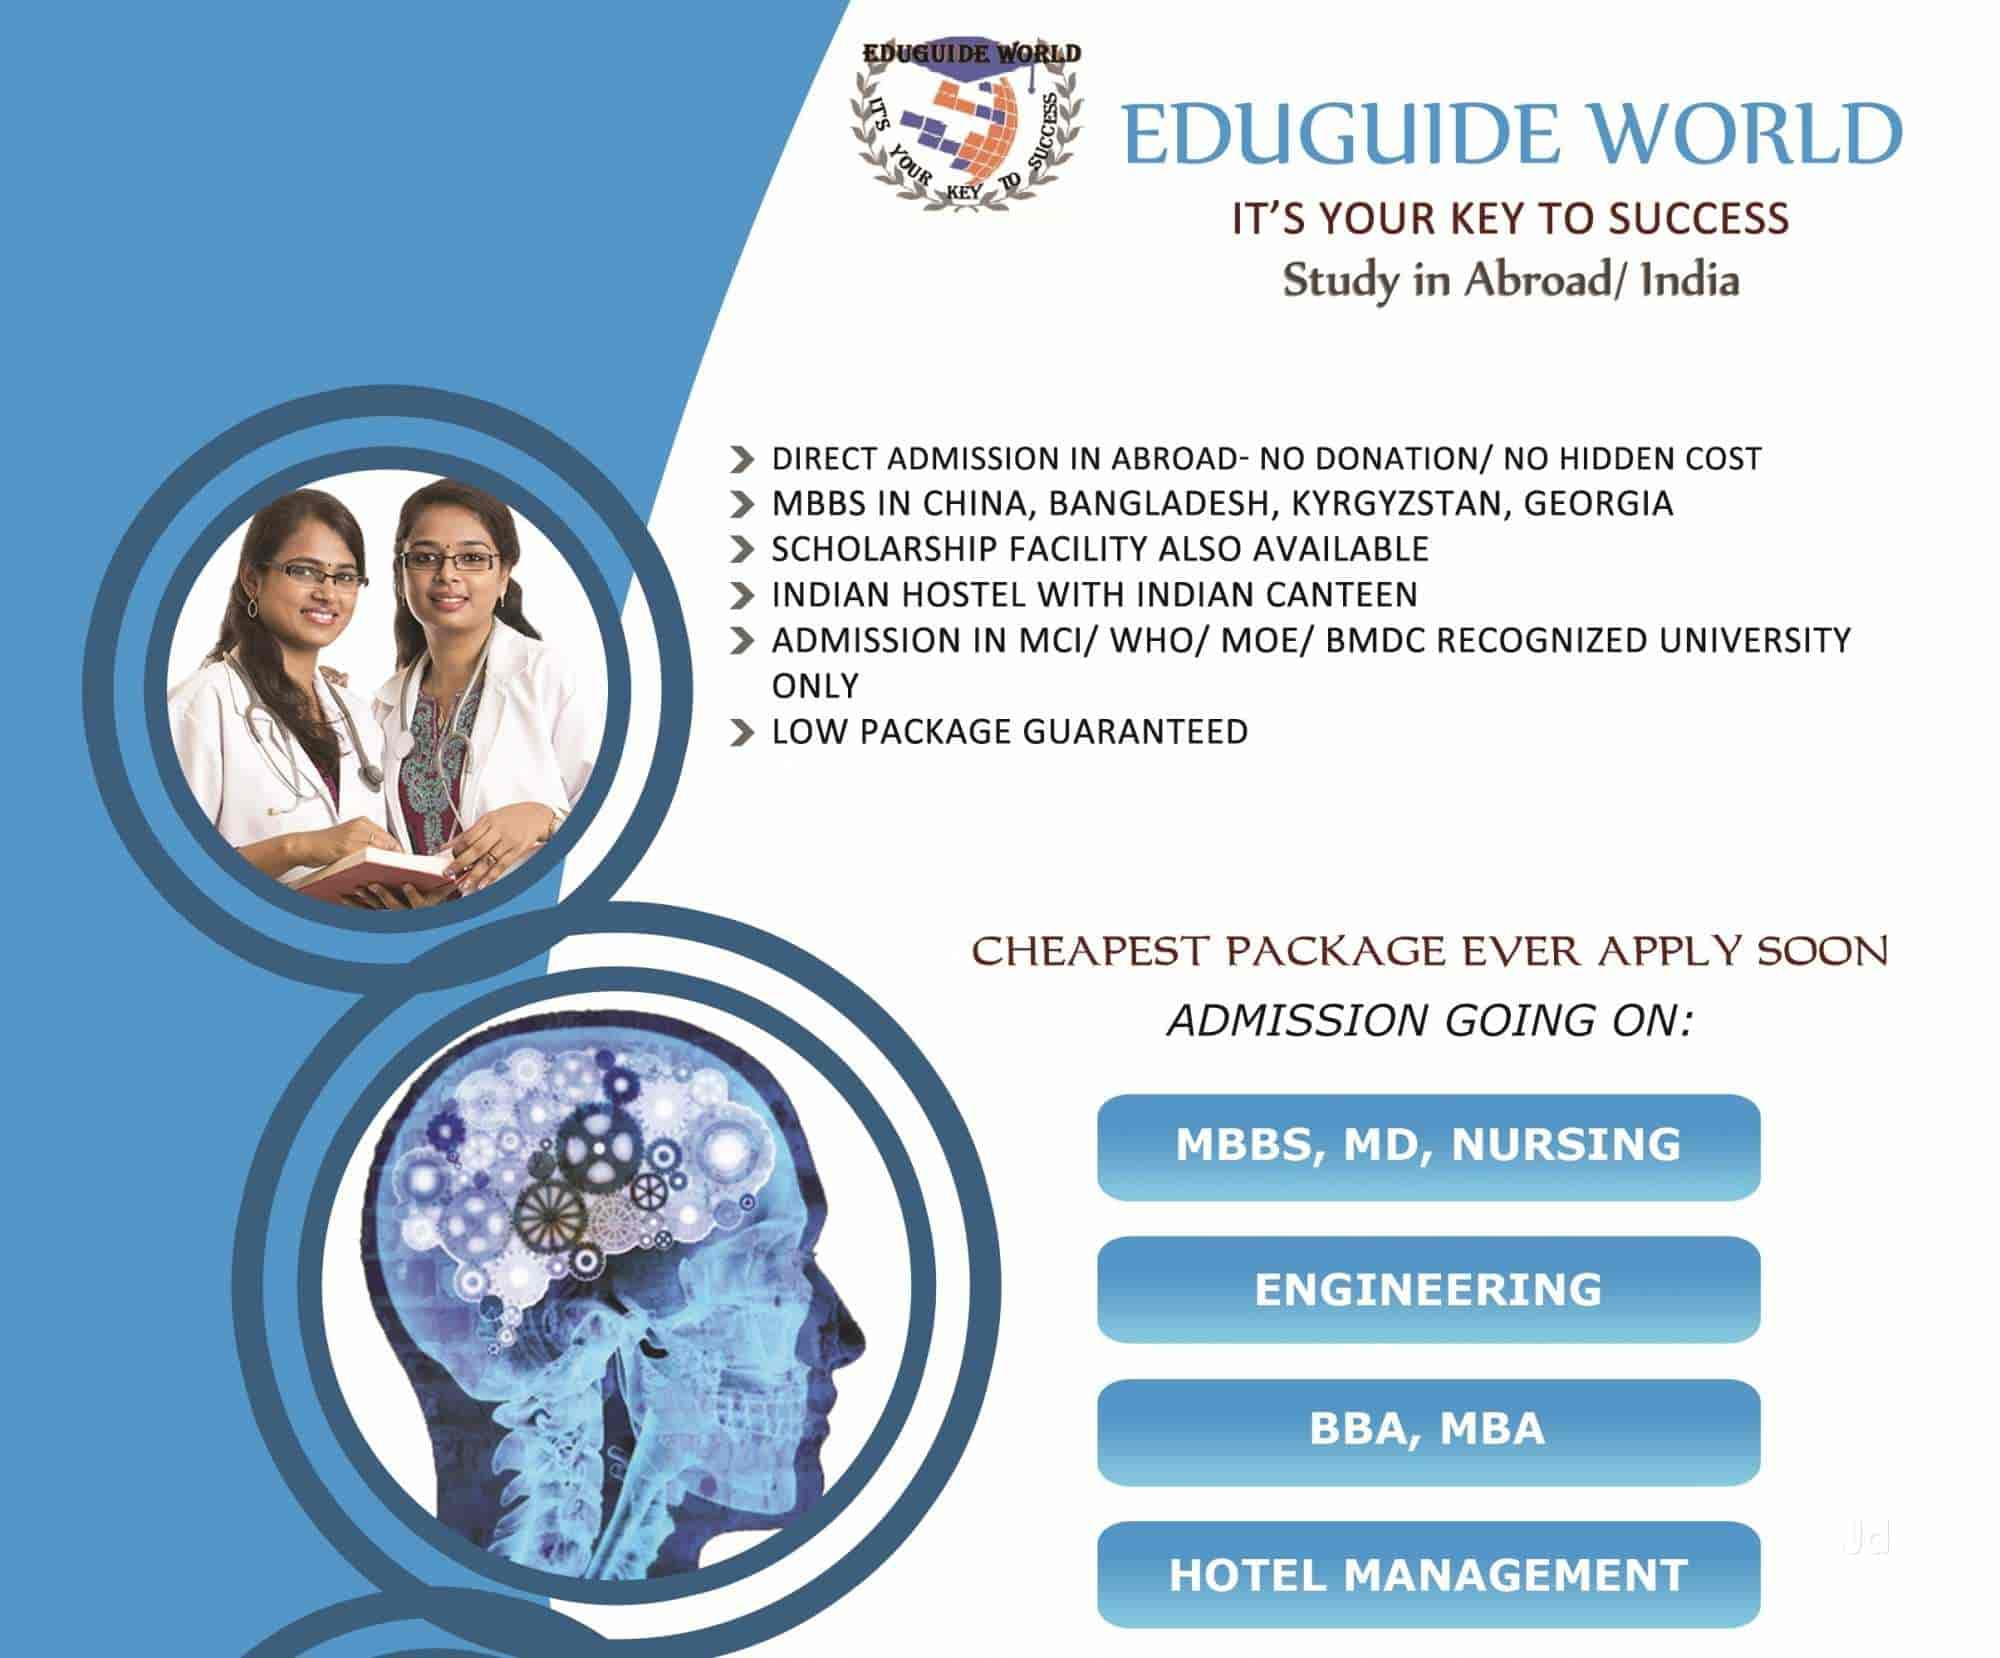 Eduguide World, Madhyamgram Bazar - Education Consultants in